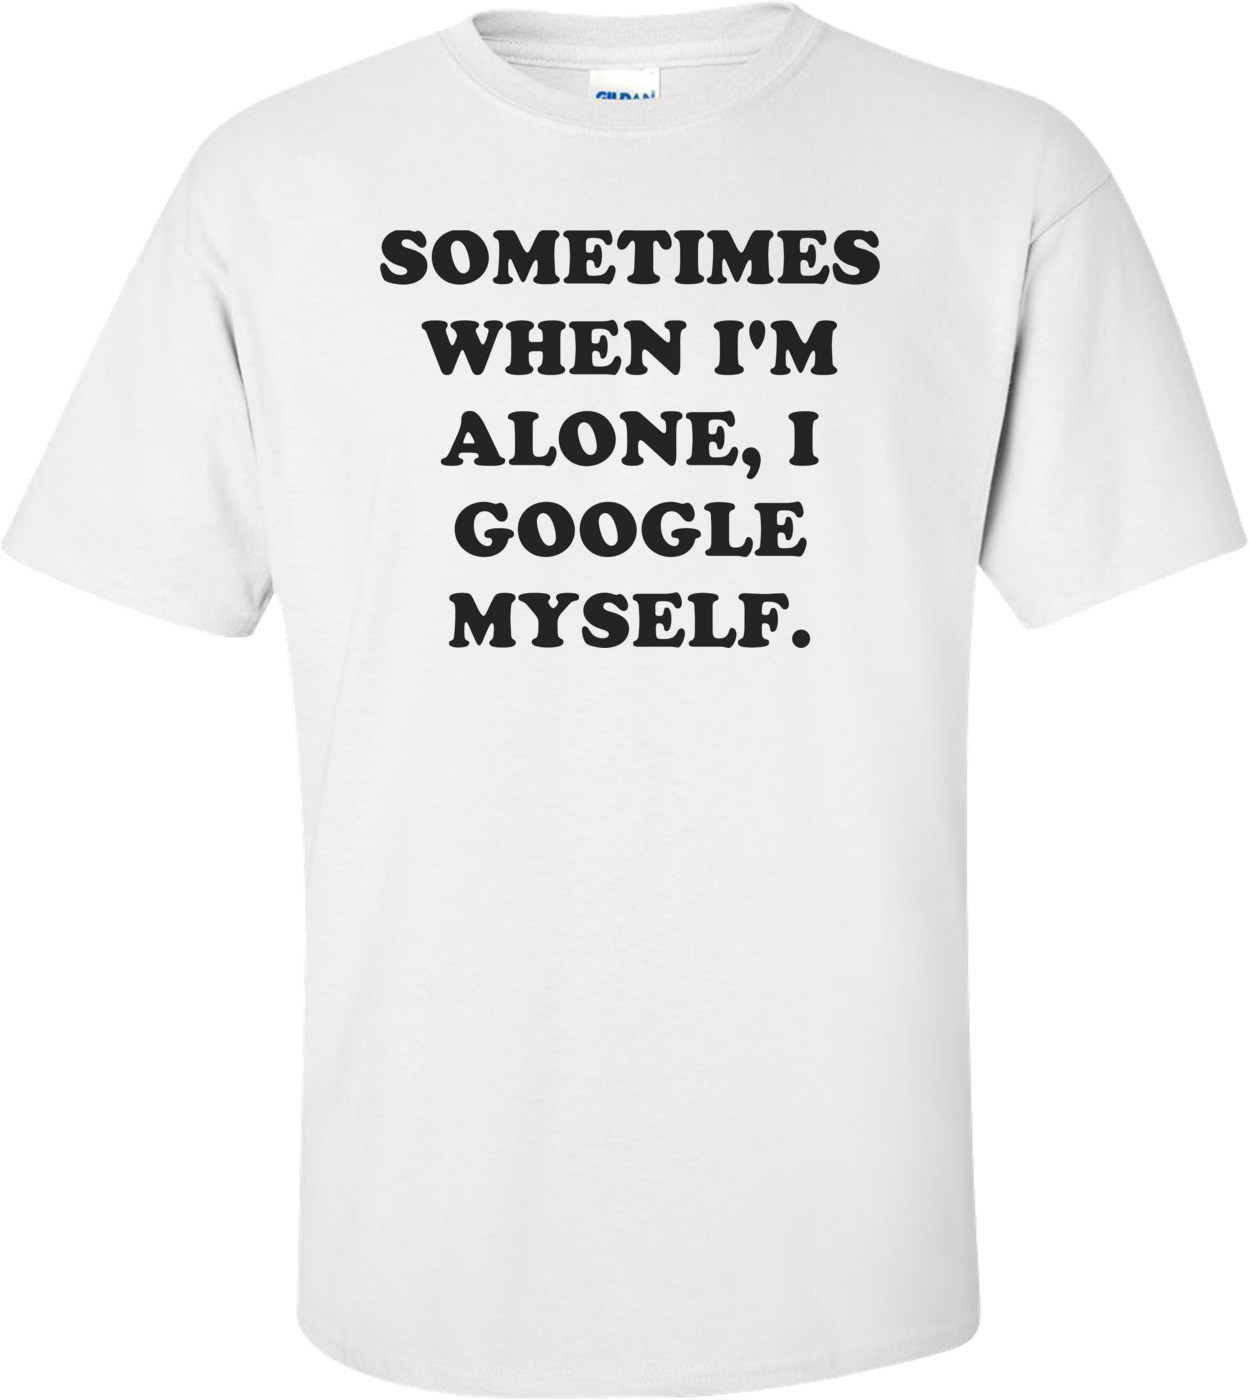 SOMETIMES WHEN I'M ALONE, I GOOGLE MYSELF. Shirt